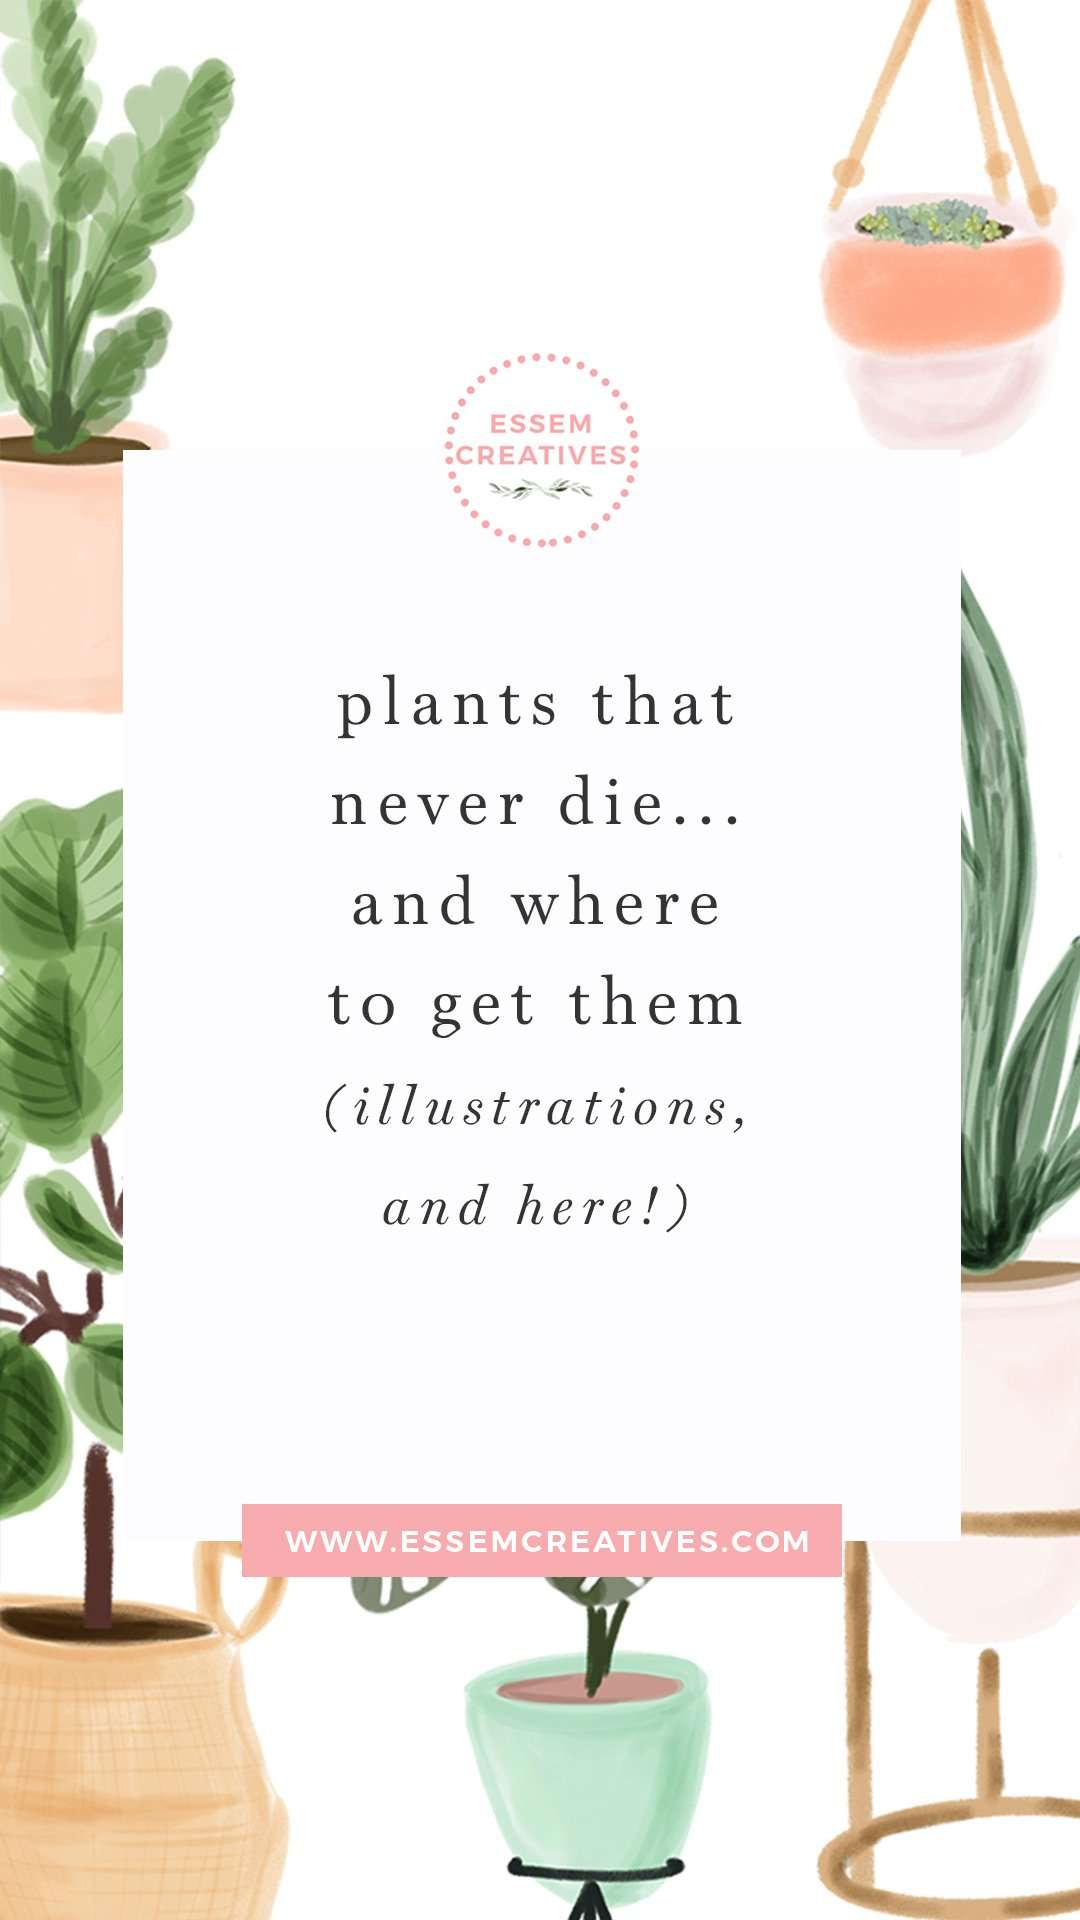 House Plants That Never Die Indoor Plant Illustrations Essem Creatives Watercolor Clipart Business Branding